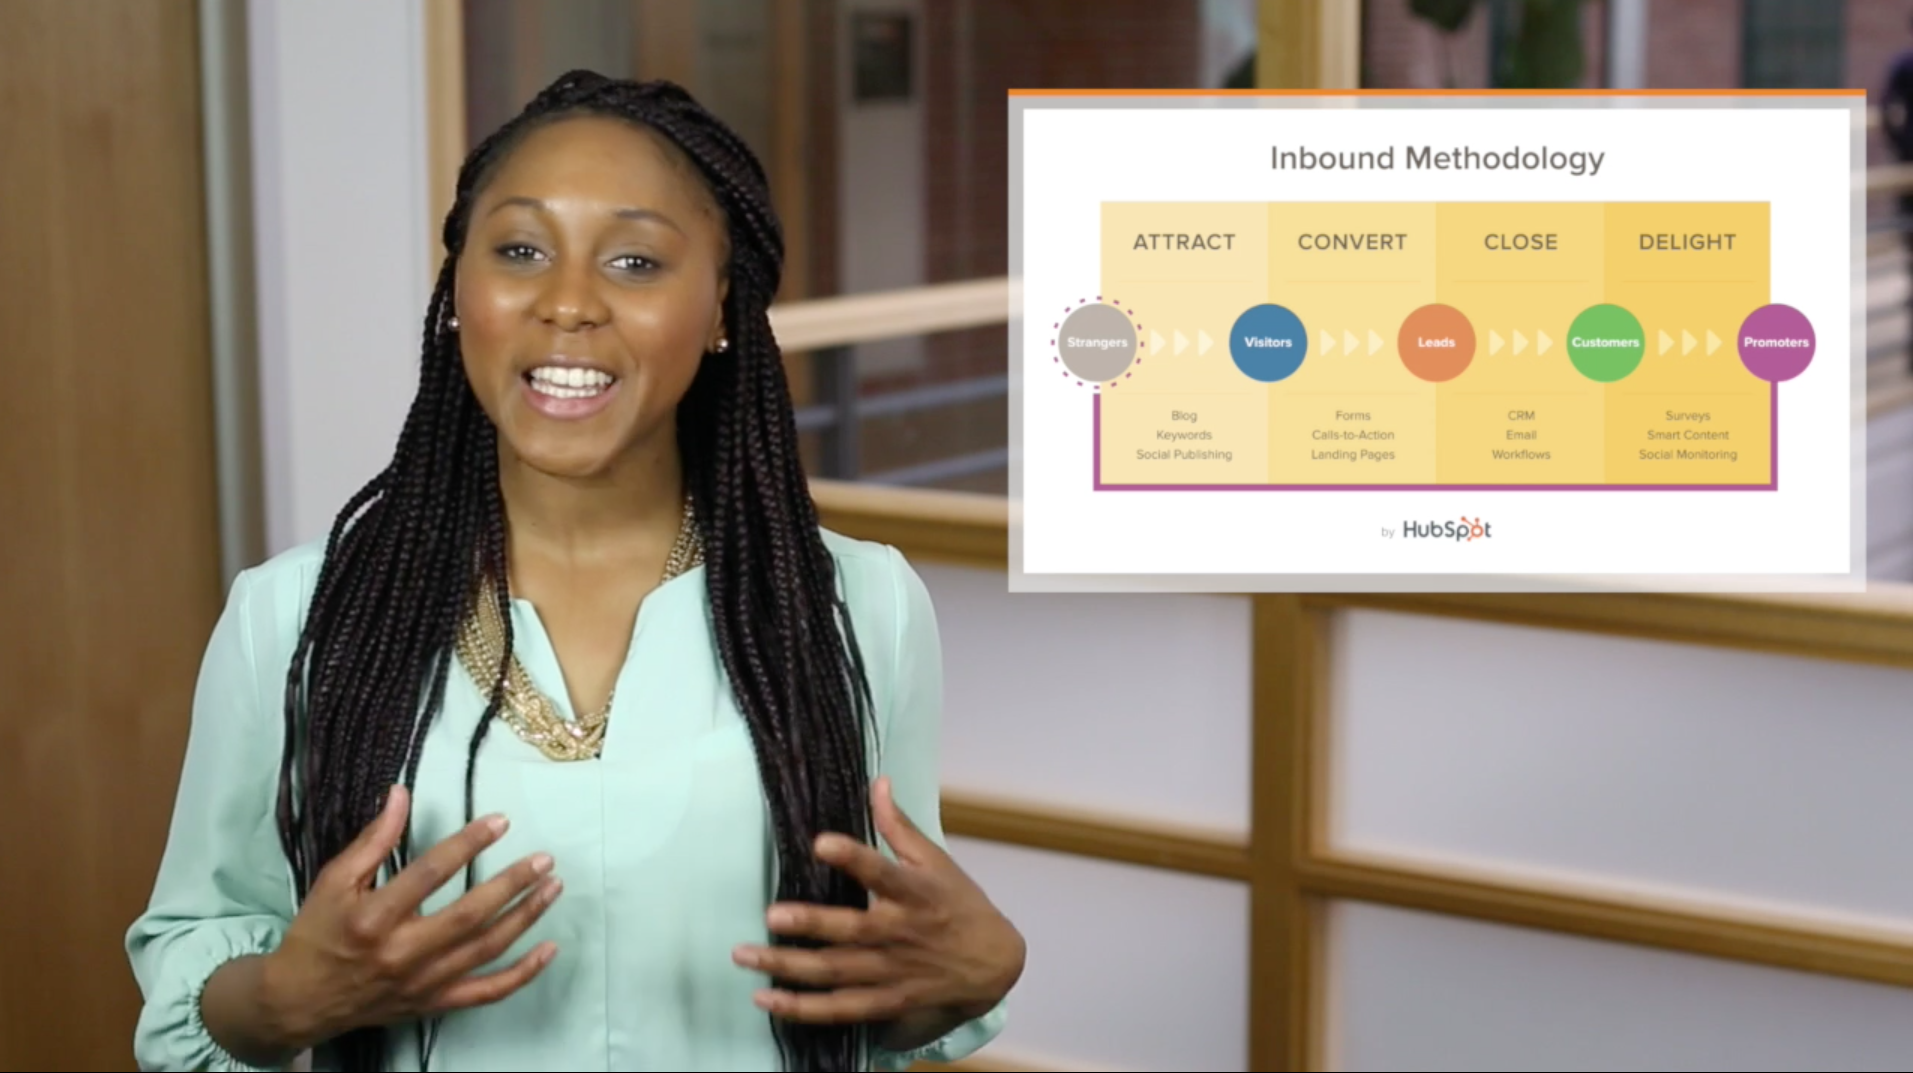 Social Media Training Video from HubSpot